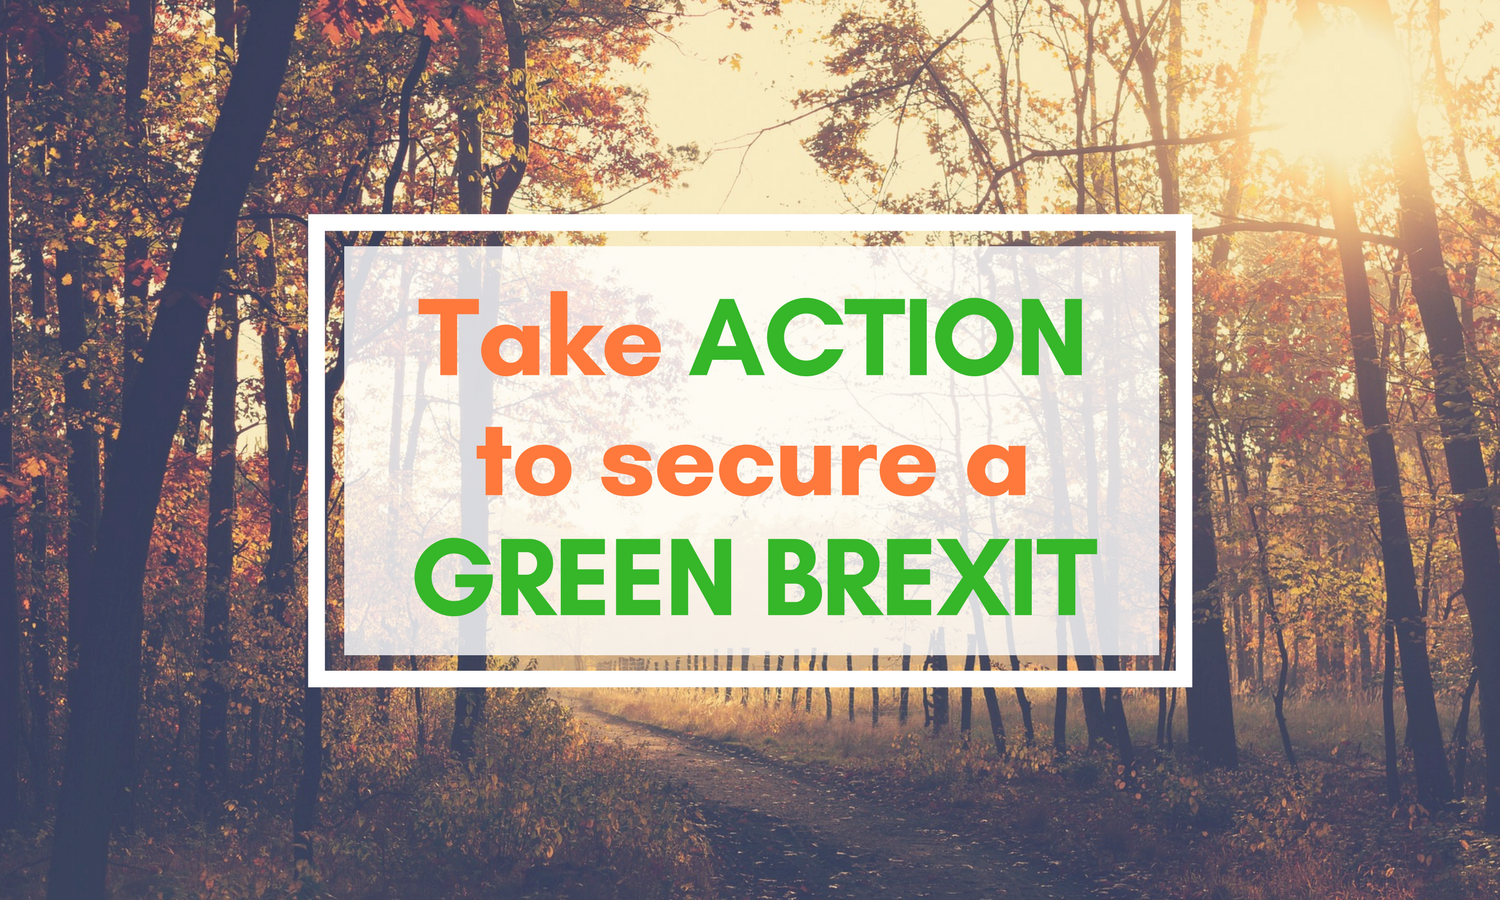 Take action to secure a green Brexit